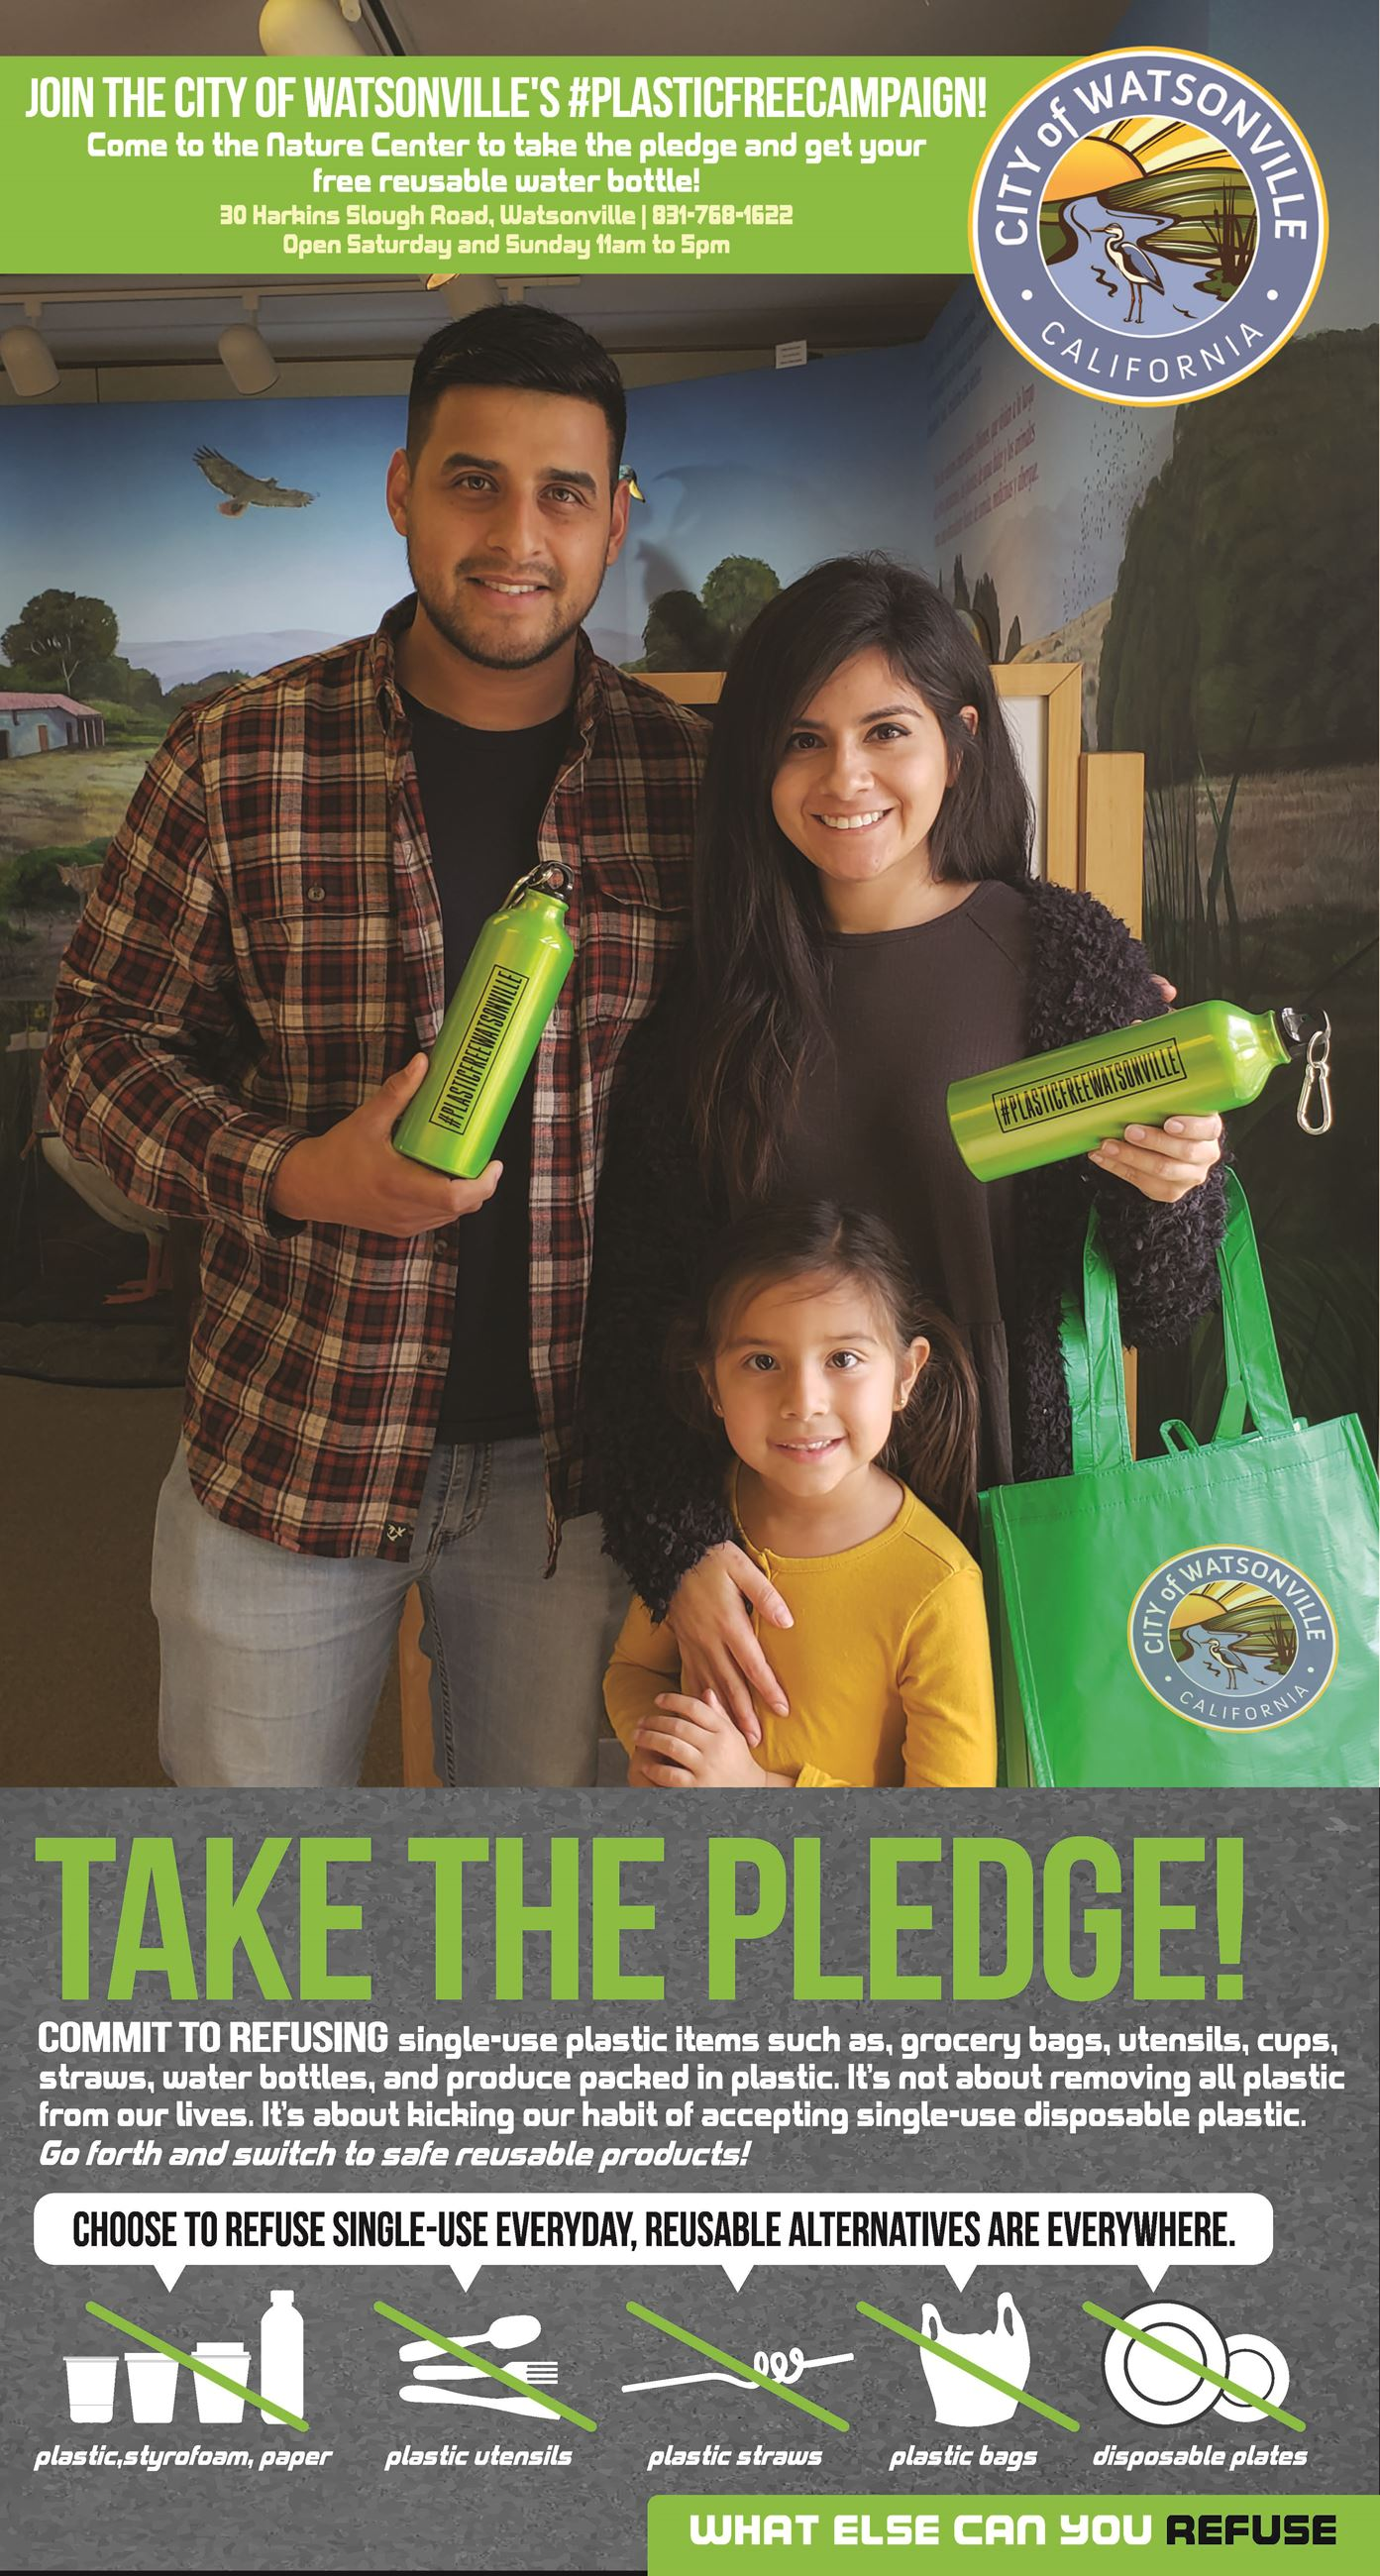 Family who took the pledge and are holding reusable water bottles